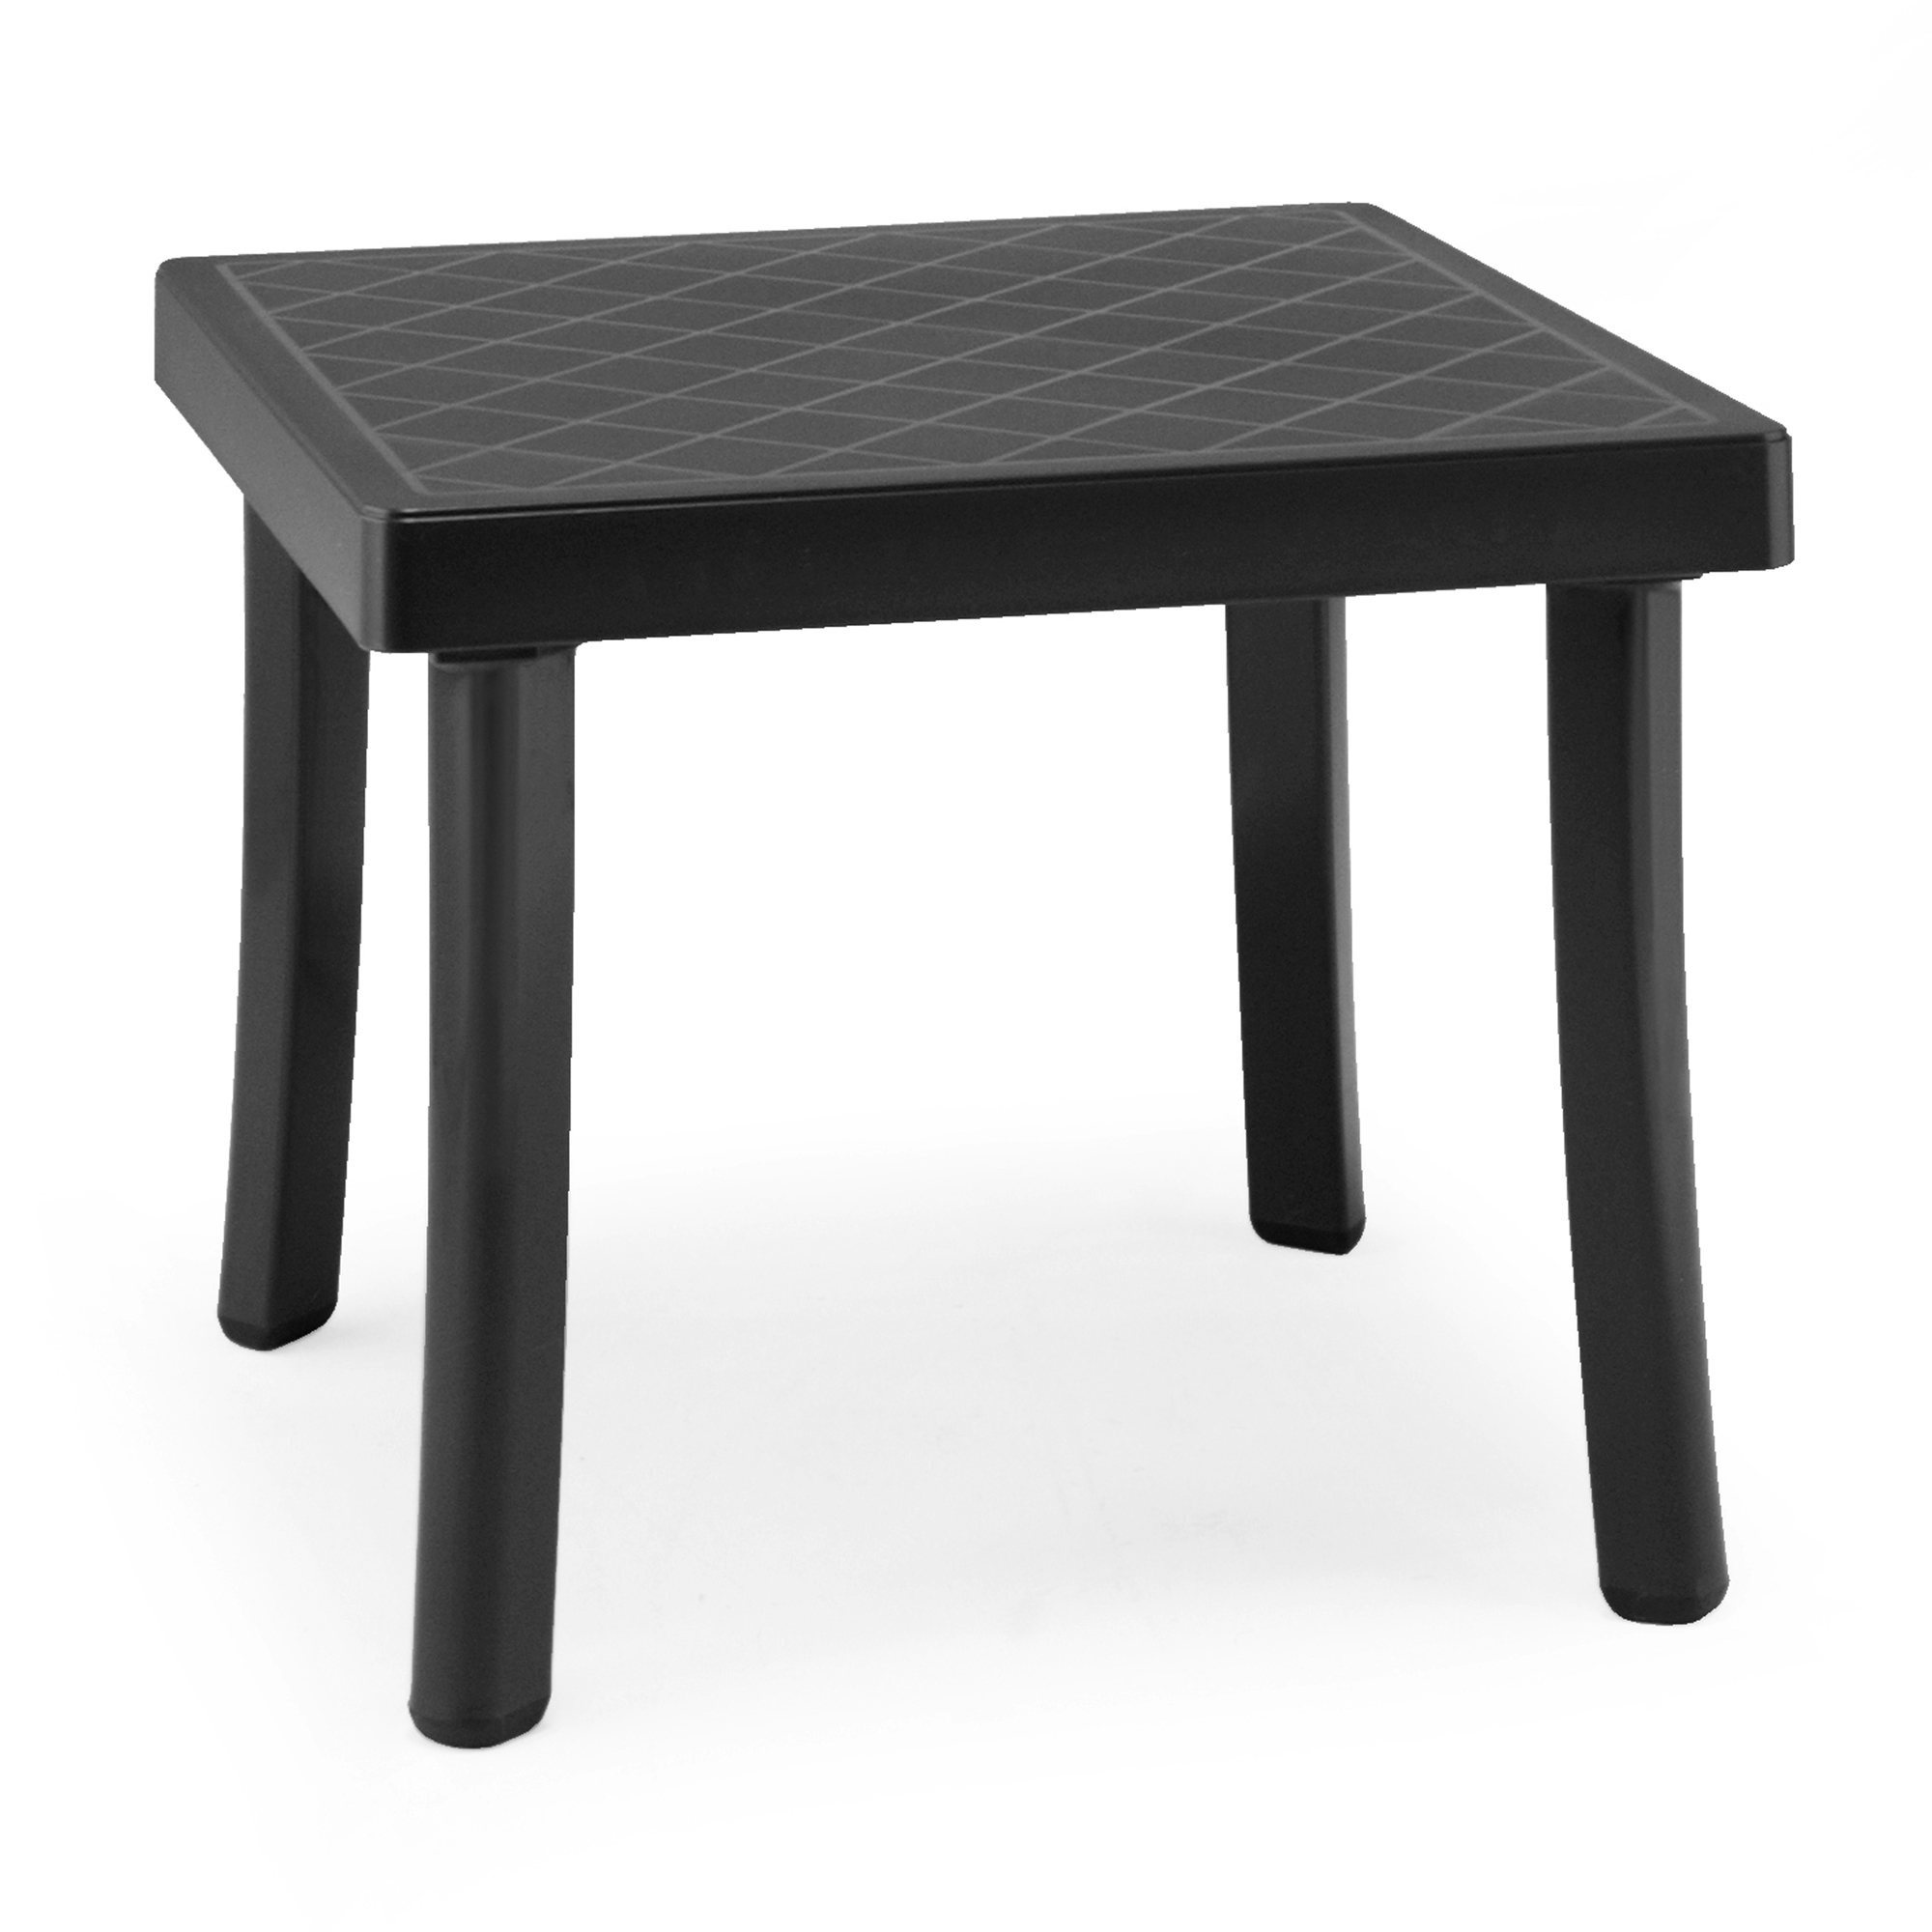 RODI SIDE TABLE ANTHRACITE WS1